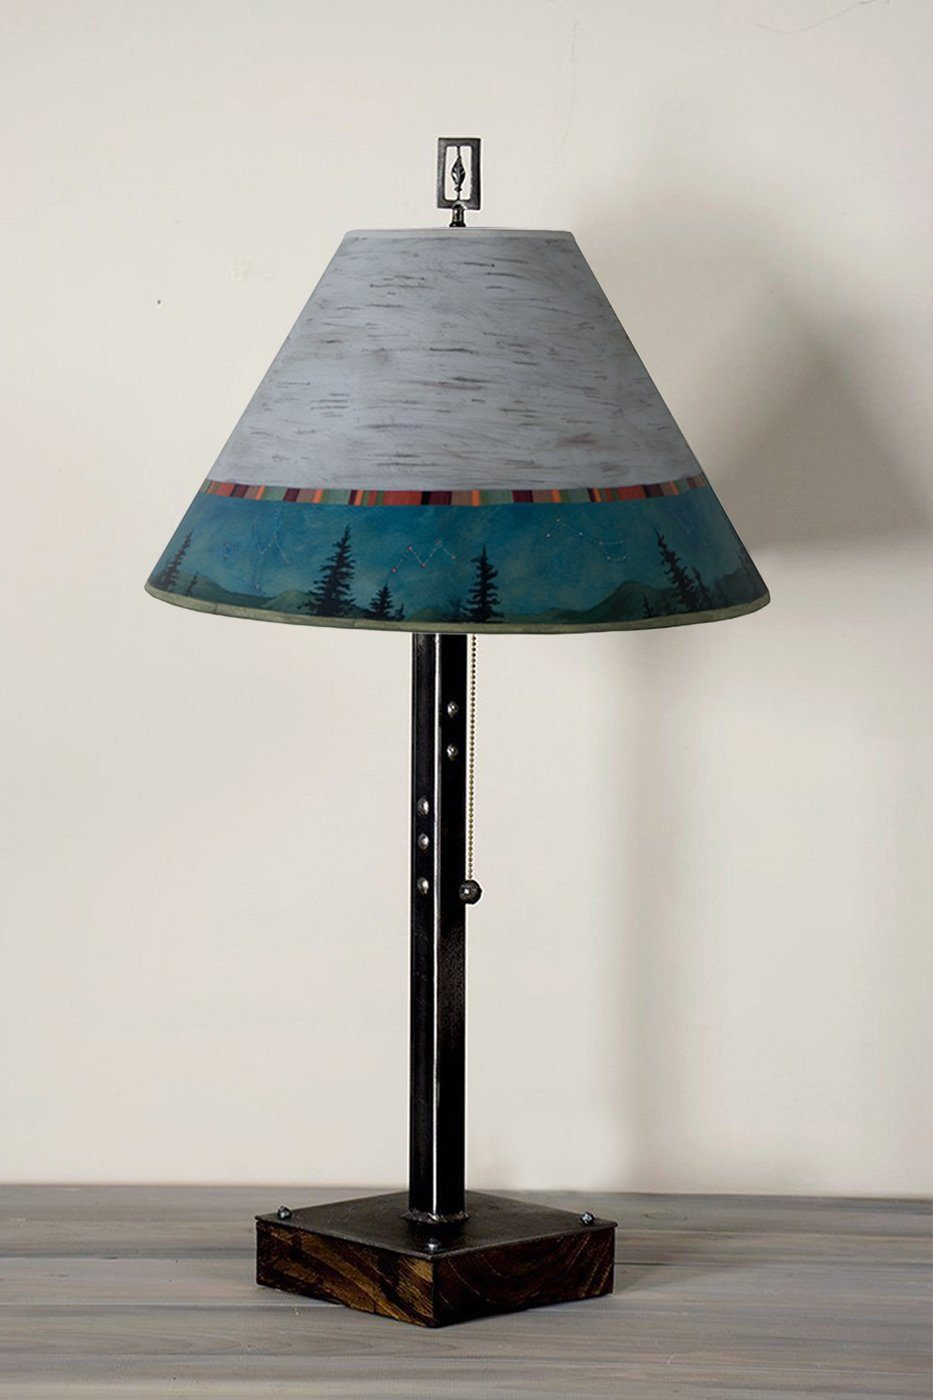 Steel Table Lamp on Wood with Medium Conical Shade in Birch Midnight